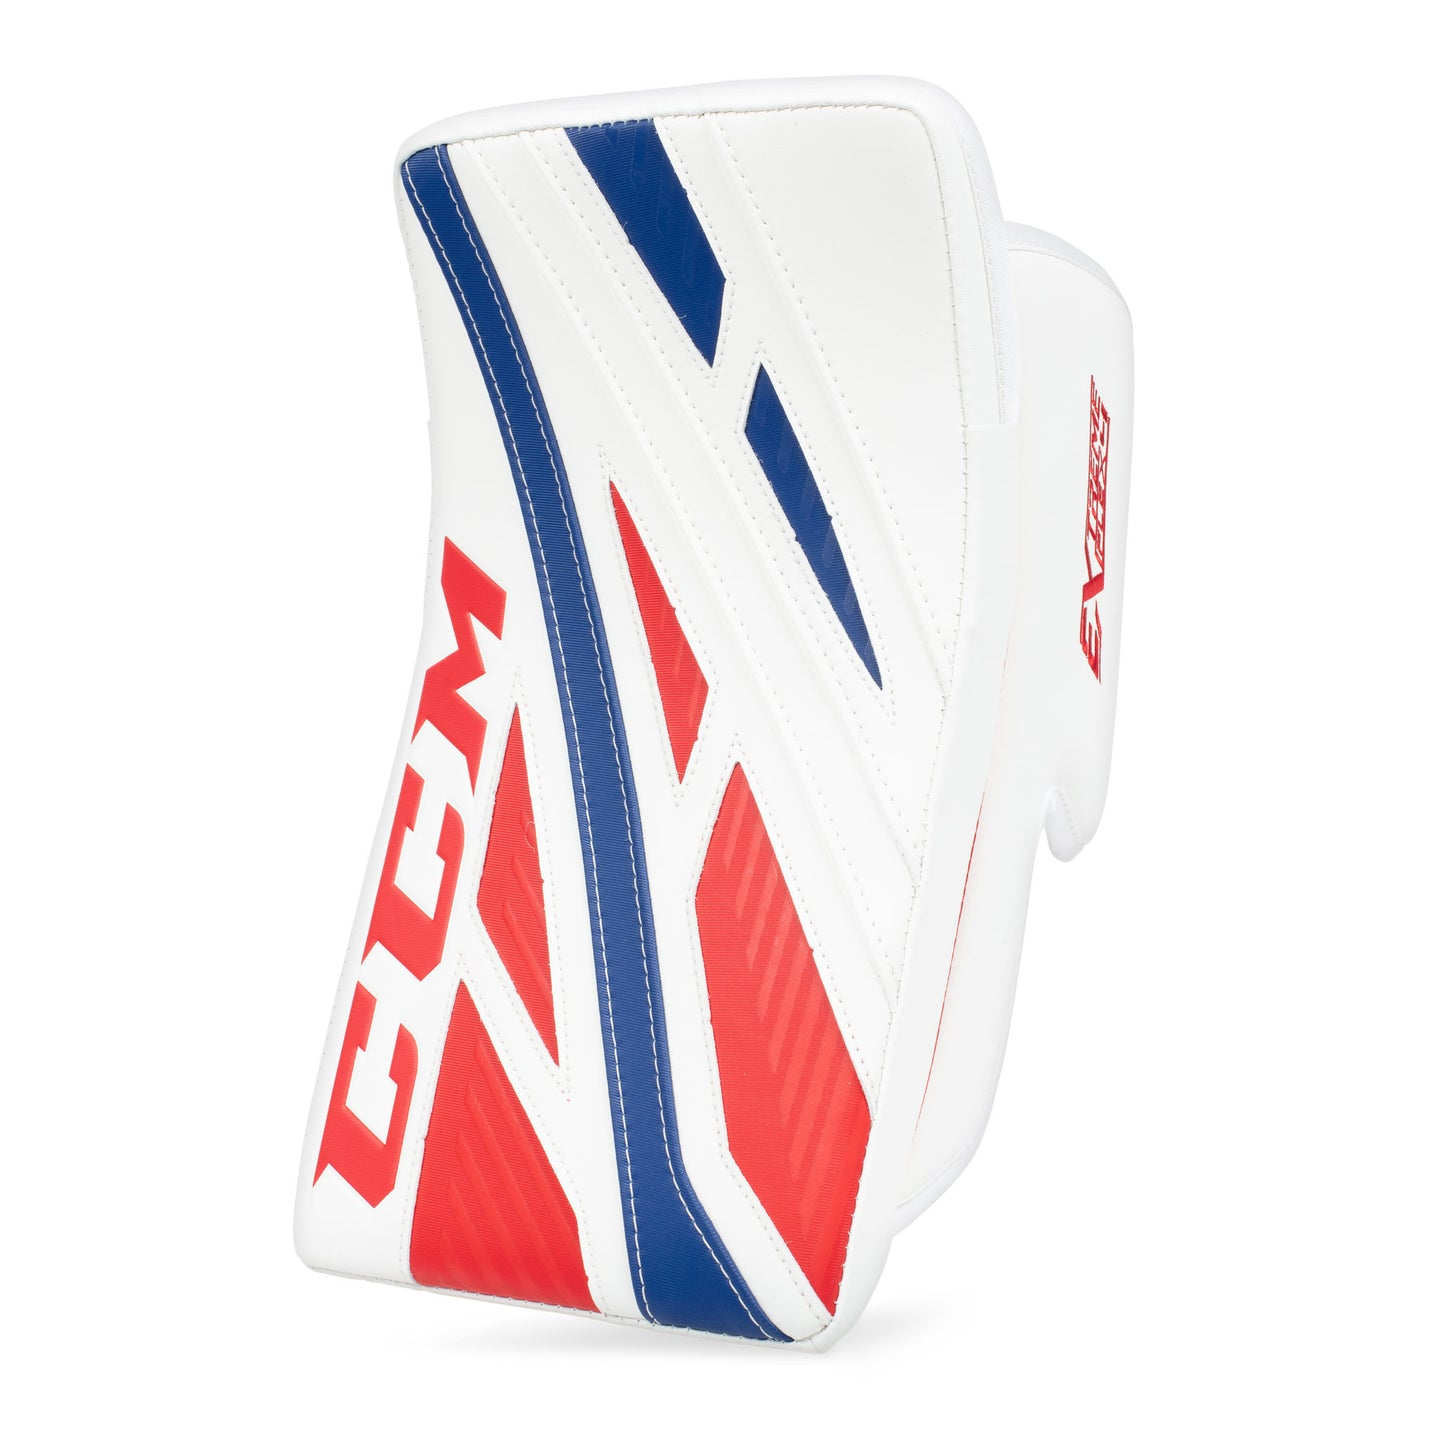 CCM Extreme Flex 4 Pro Senior Goalie Blocker